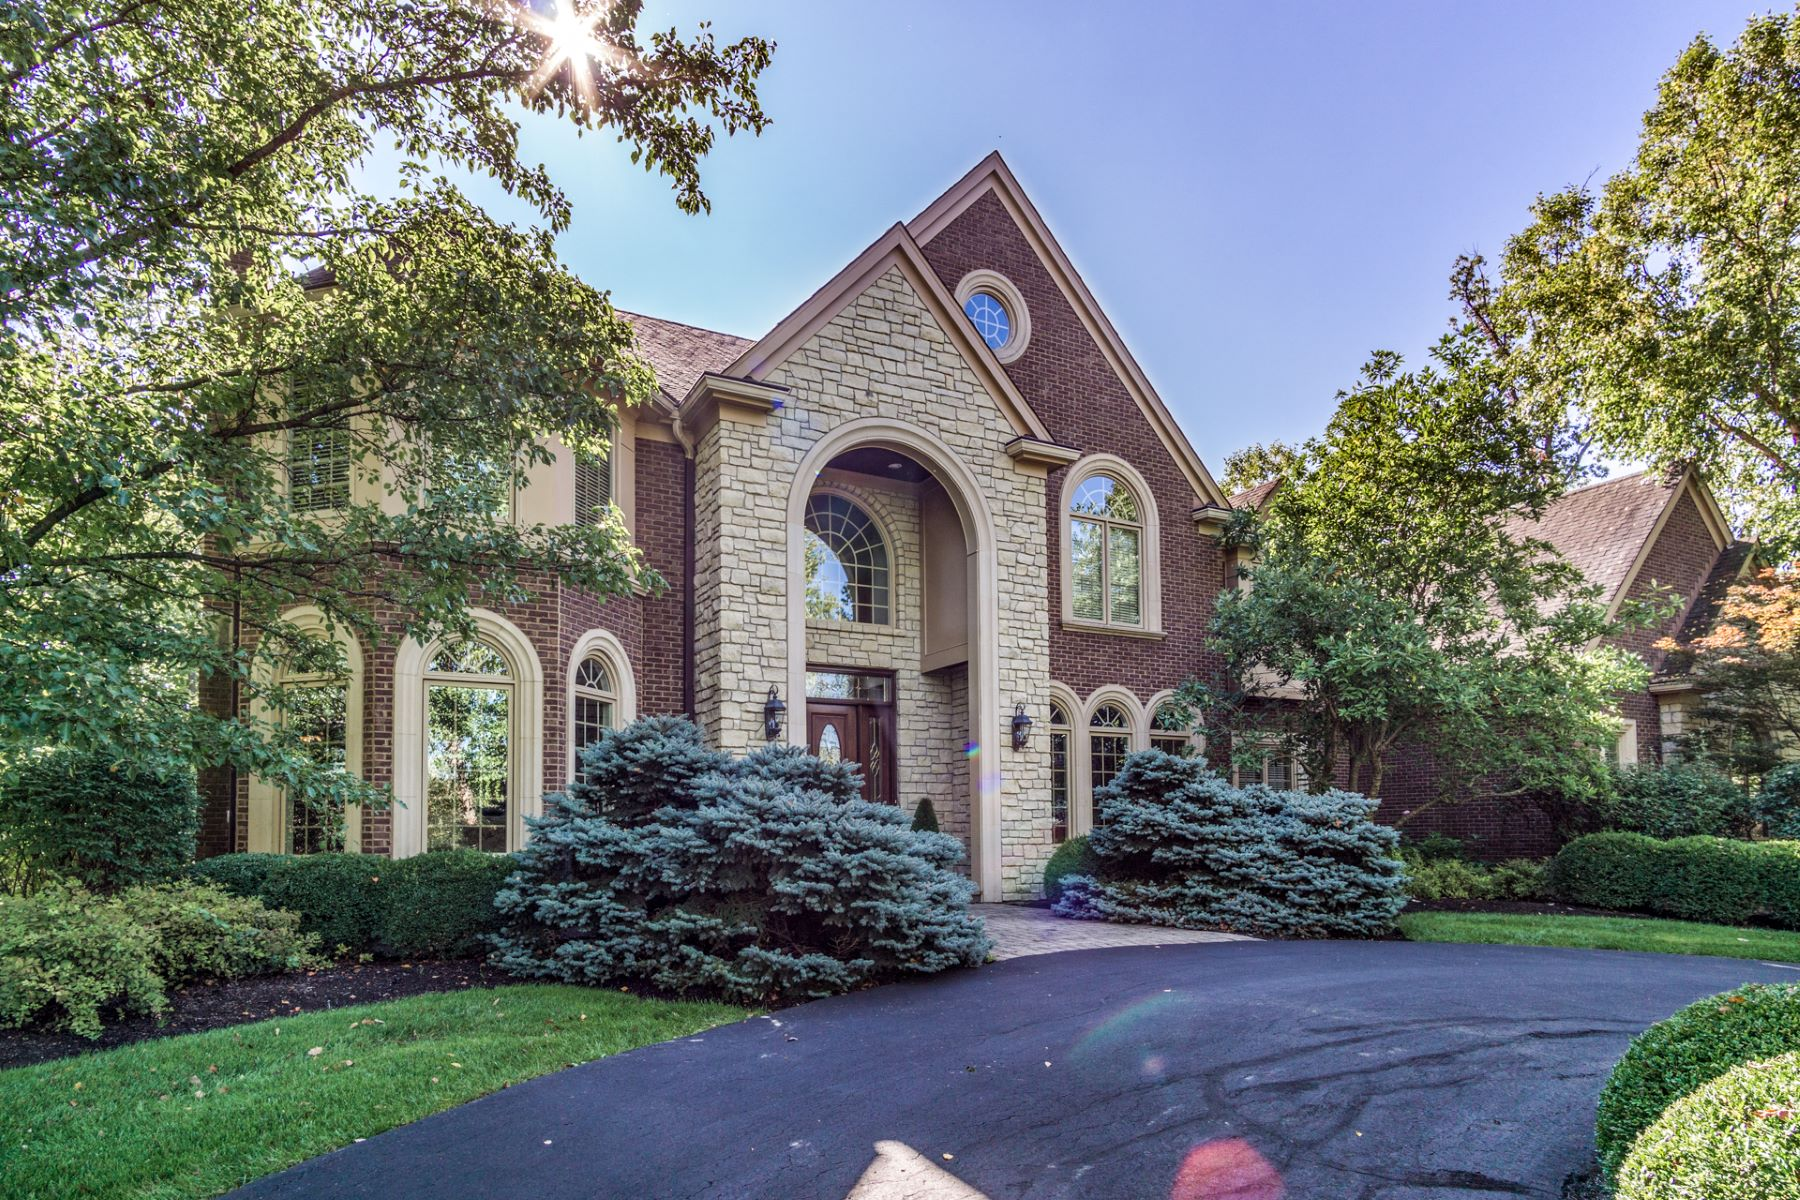 واحد منزل الأسرة للـ Sale في Elegant. Stately. Inviting. A gracefully designed floor plan. 4980 Taft Pl, Indian Hill, Ohio, 45243 United States